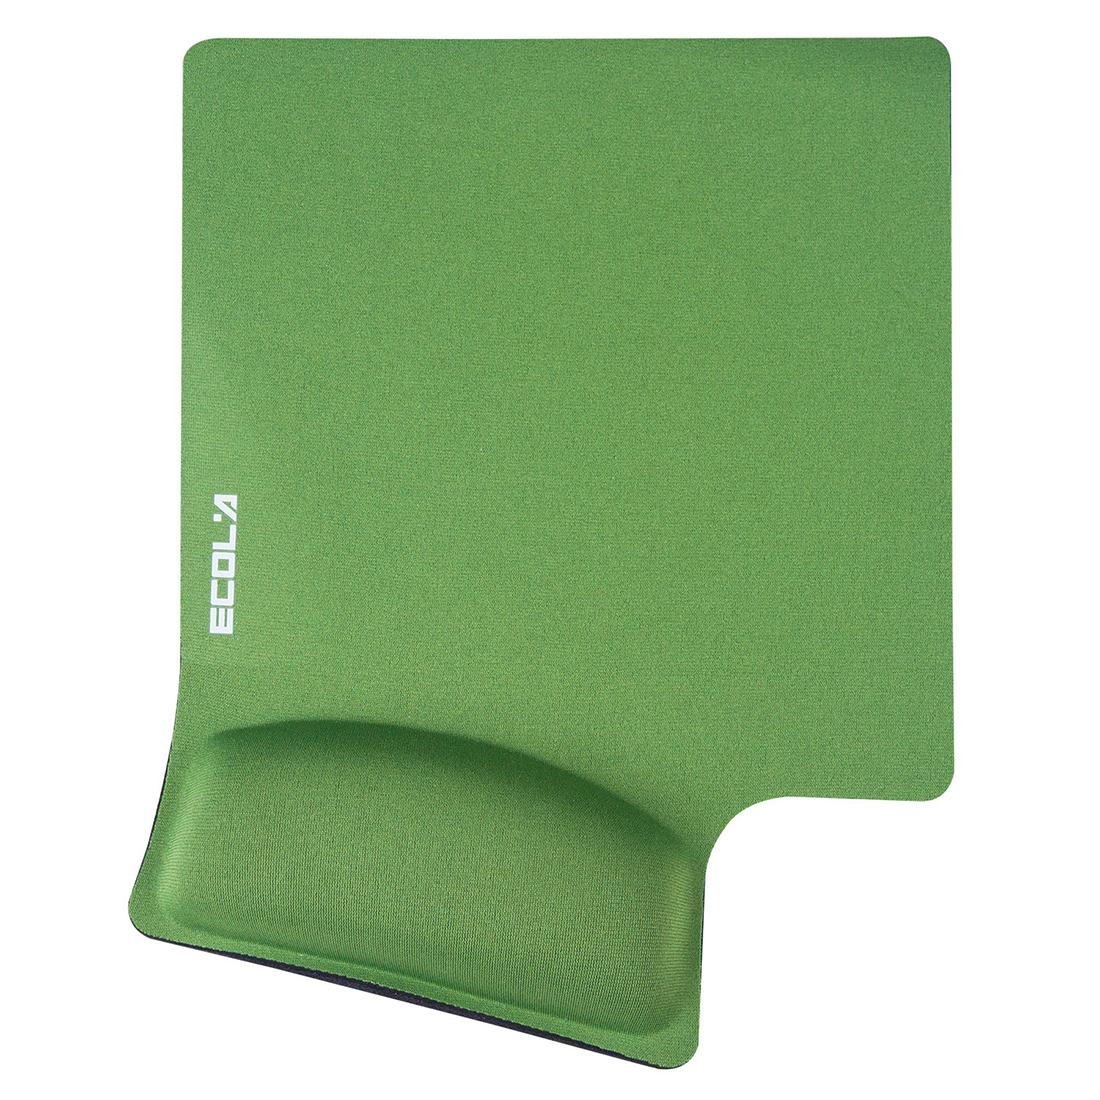 ECOLA MPD-014P Antifatigue Comfort 14°Ergonomic Waverest Mousepad